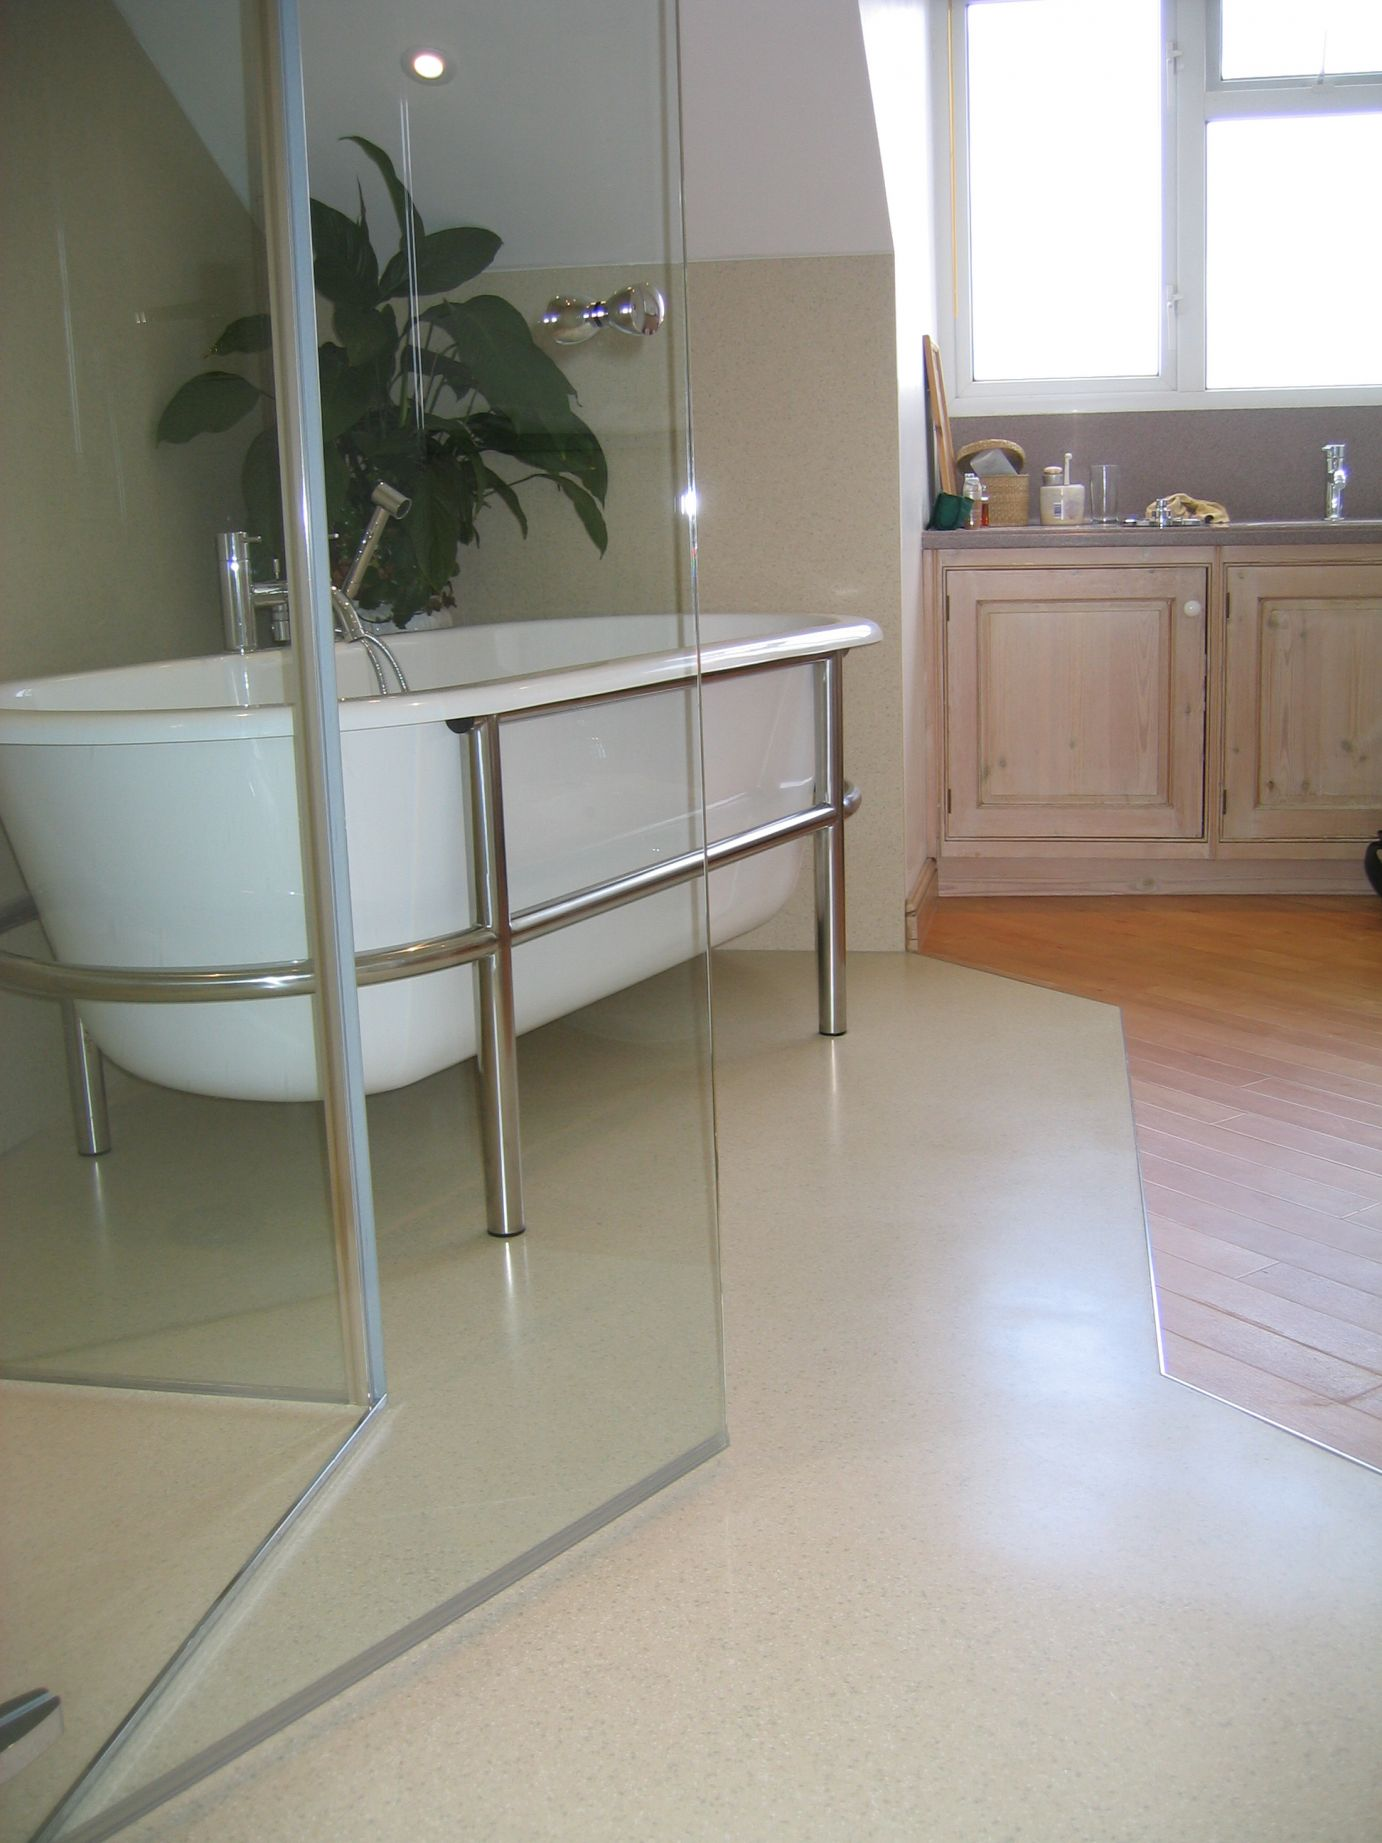 Wet Room With Flush Floor Transition To Laminate In Large Bathroom Solidity